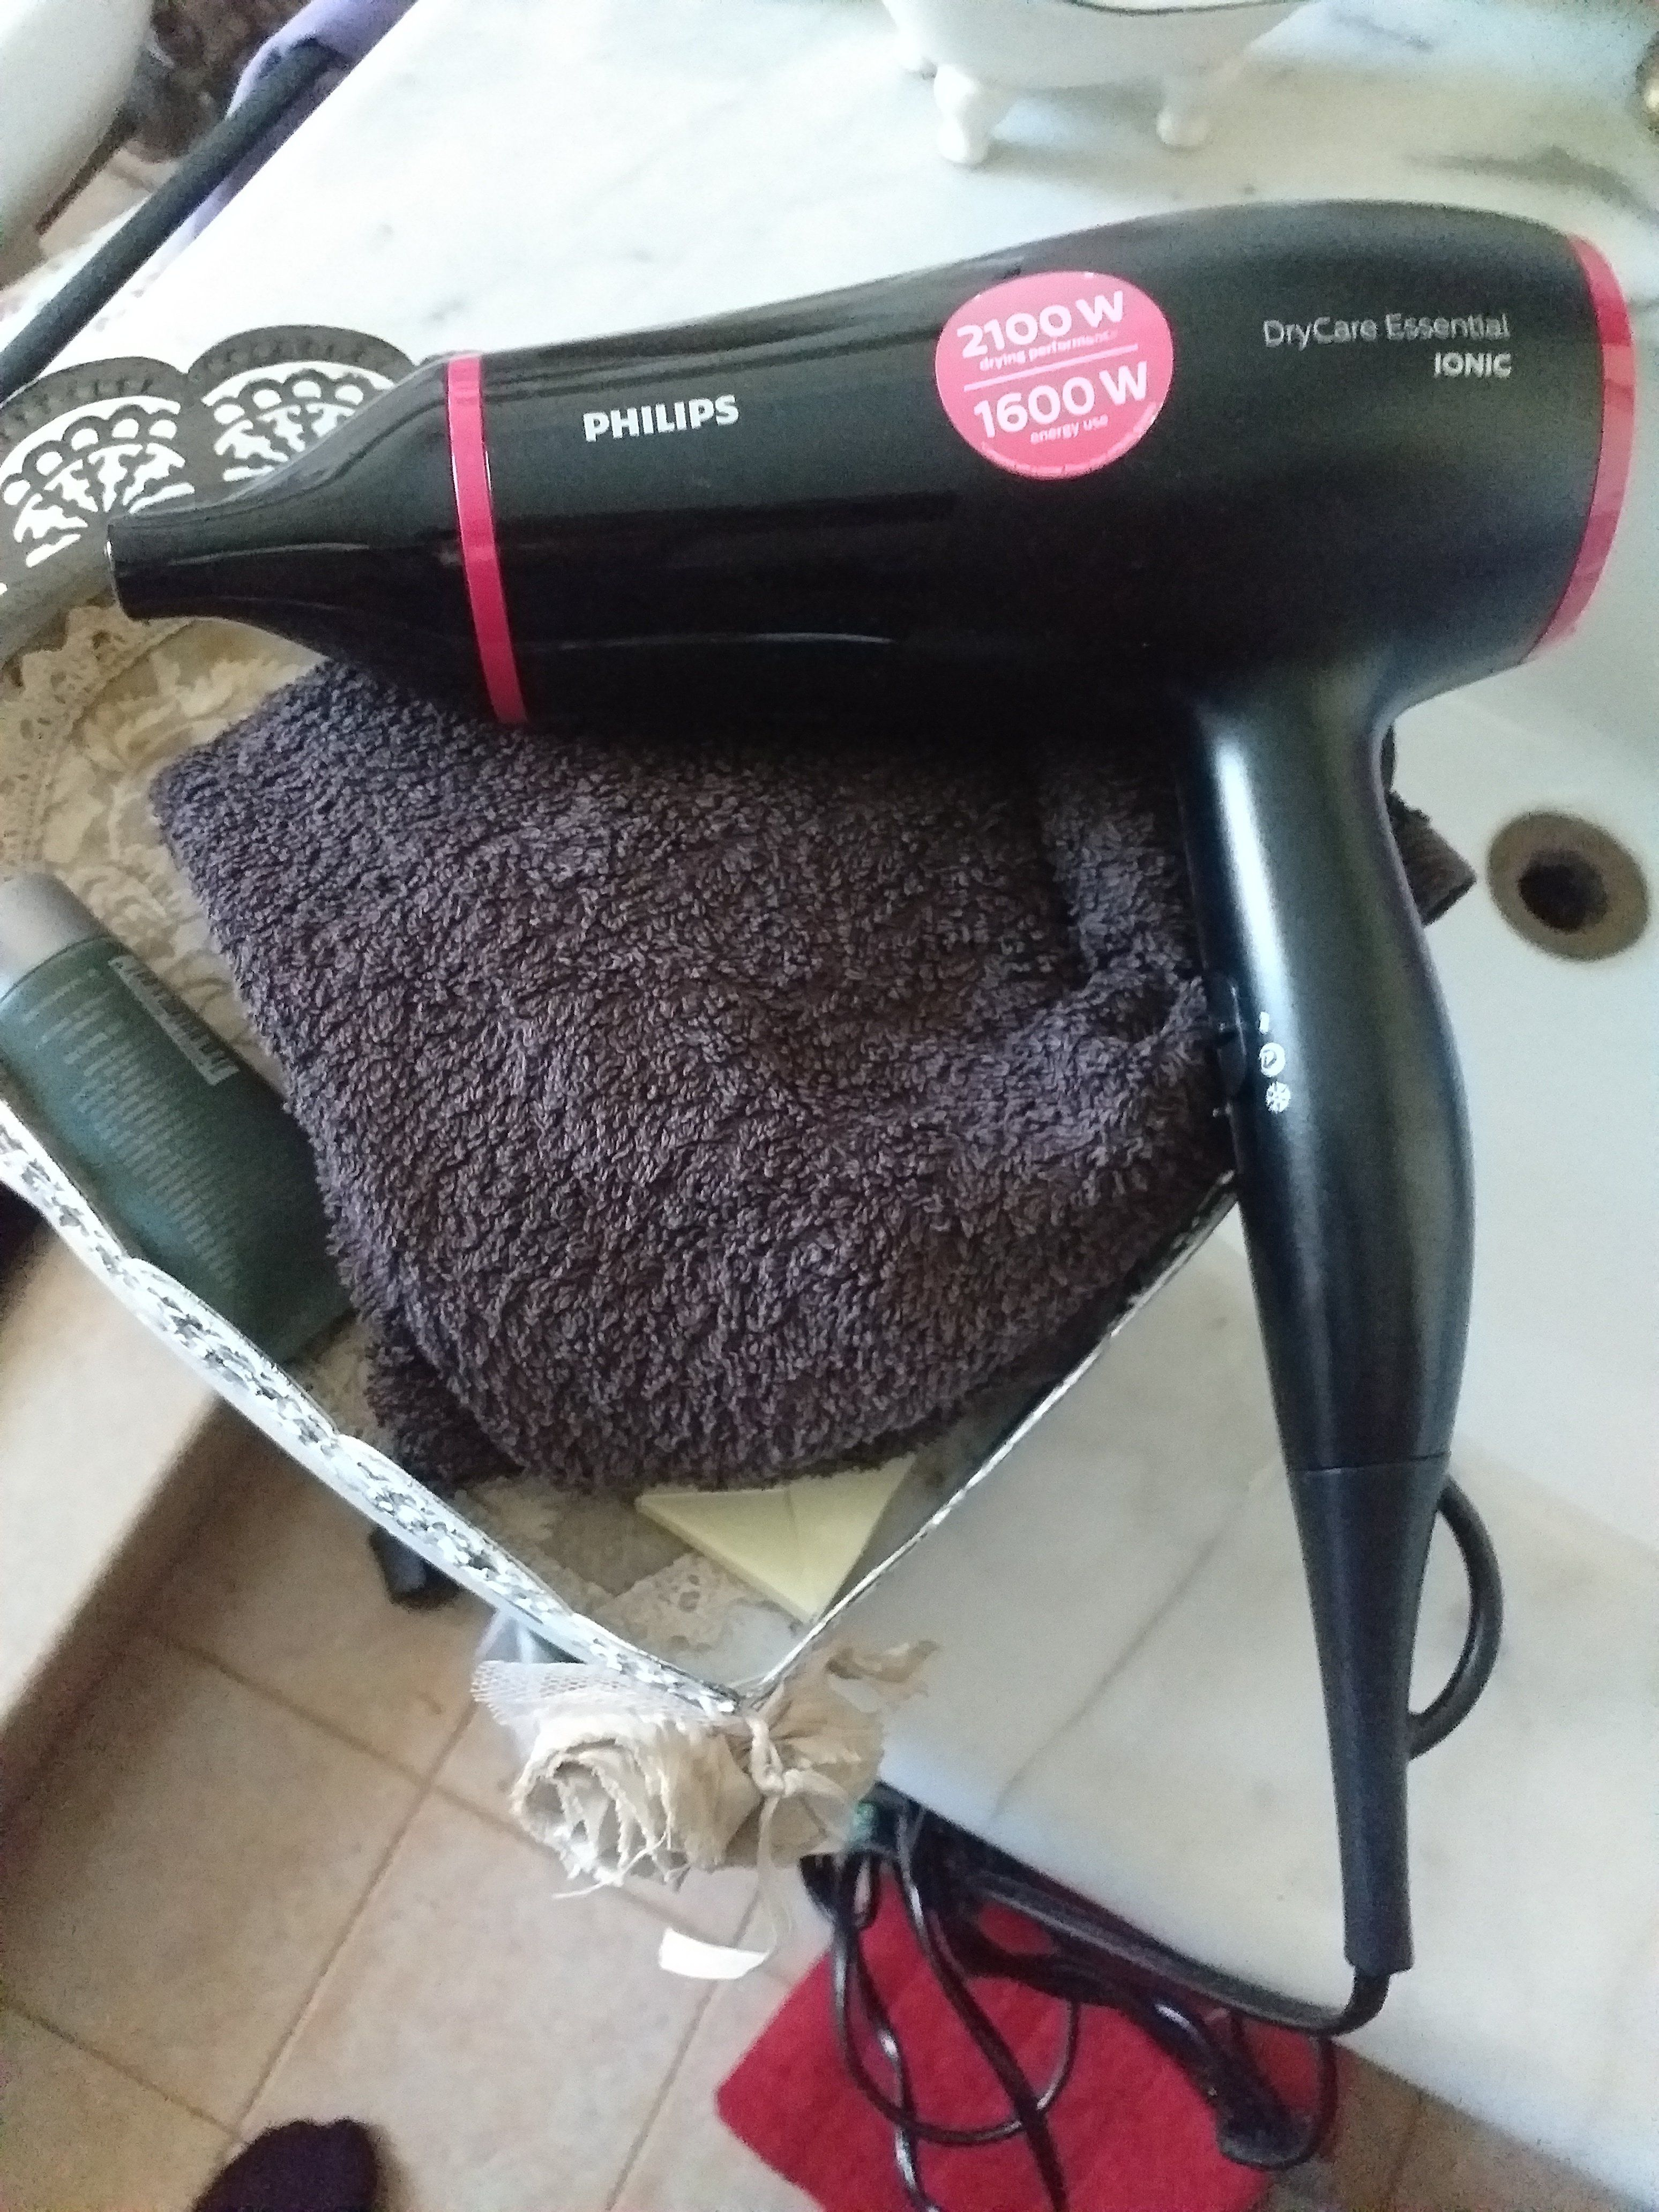 Philips BHD02900 DryCare Essential